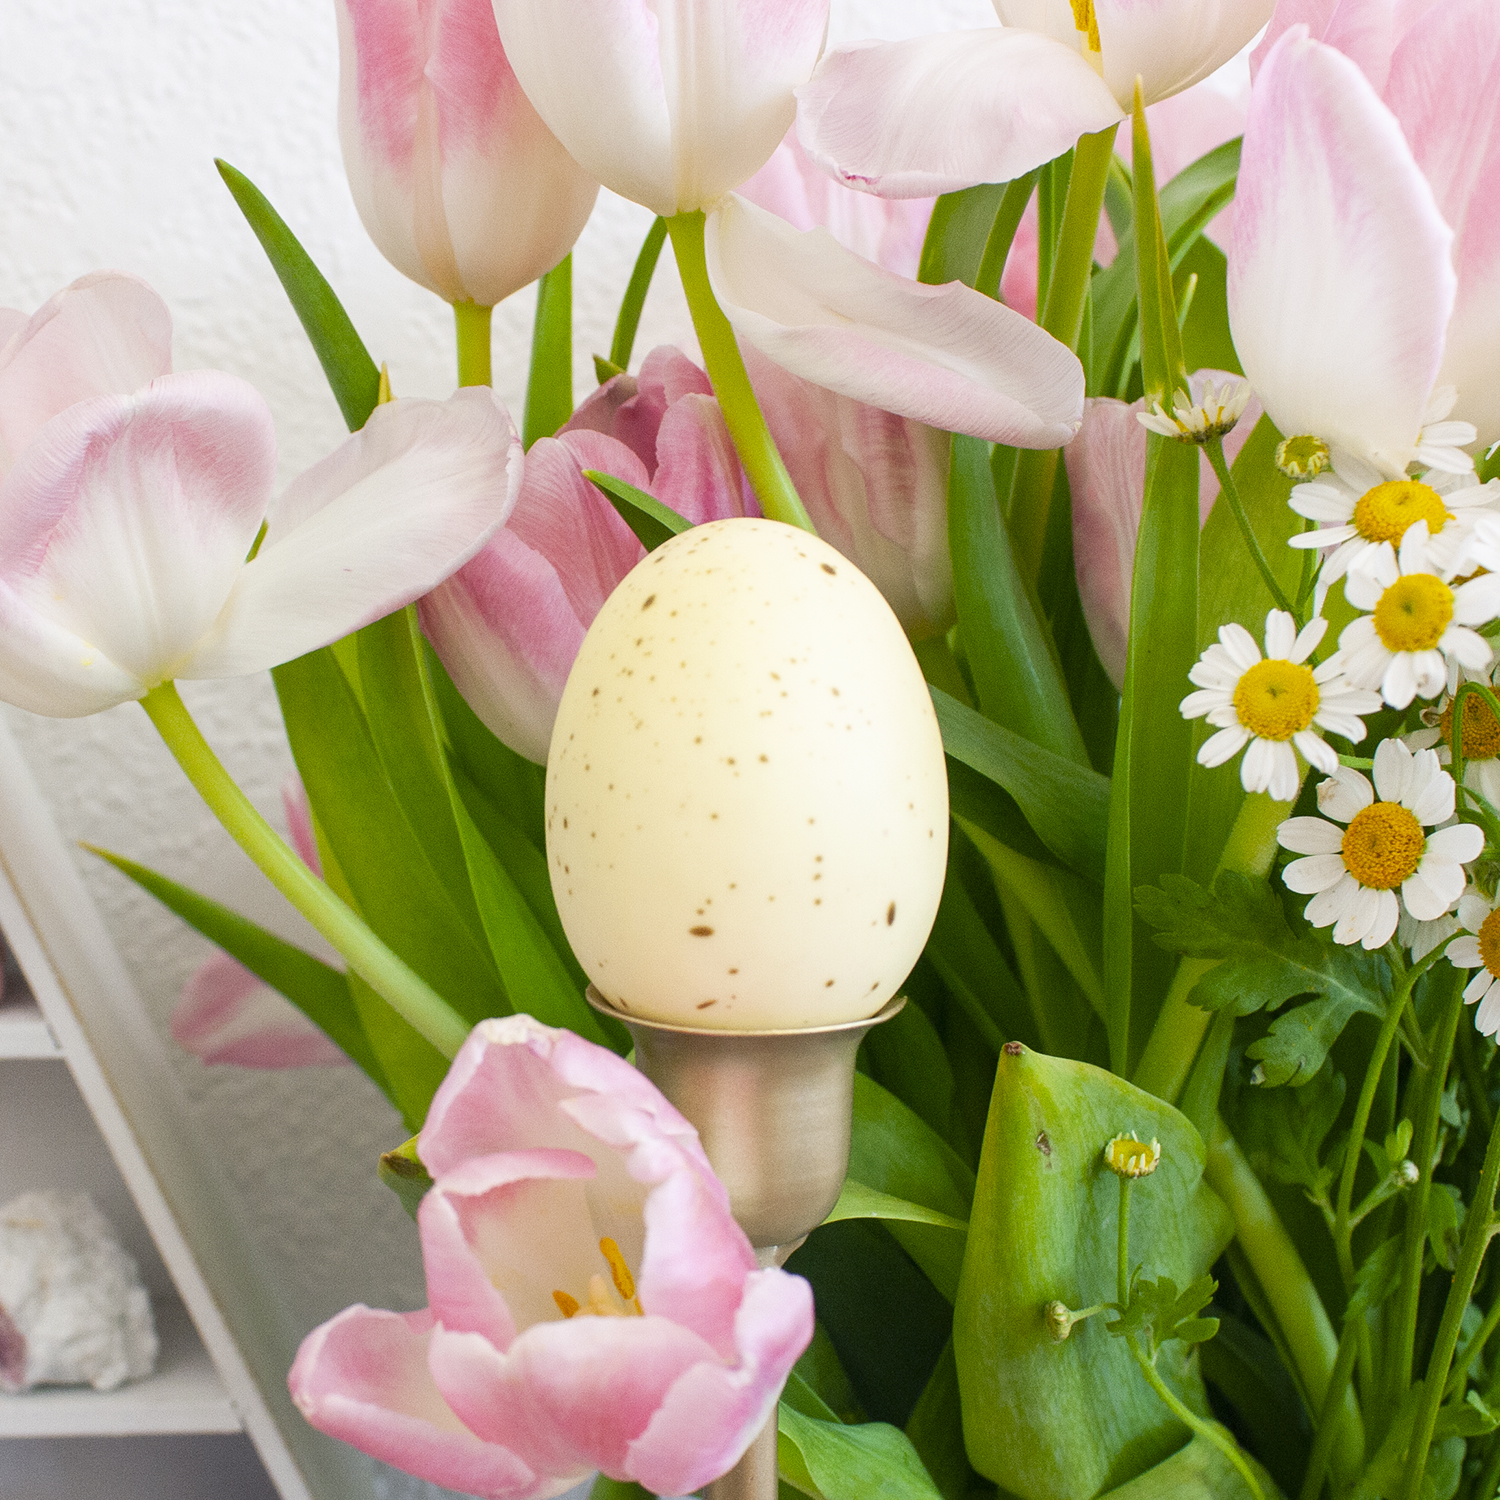 ostara rituals egg rituals for the spring equinox